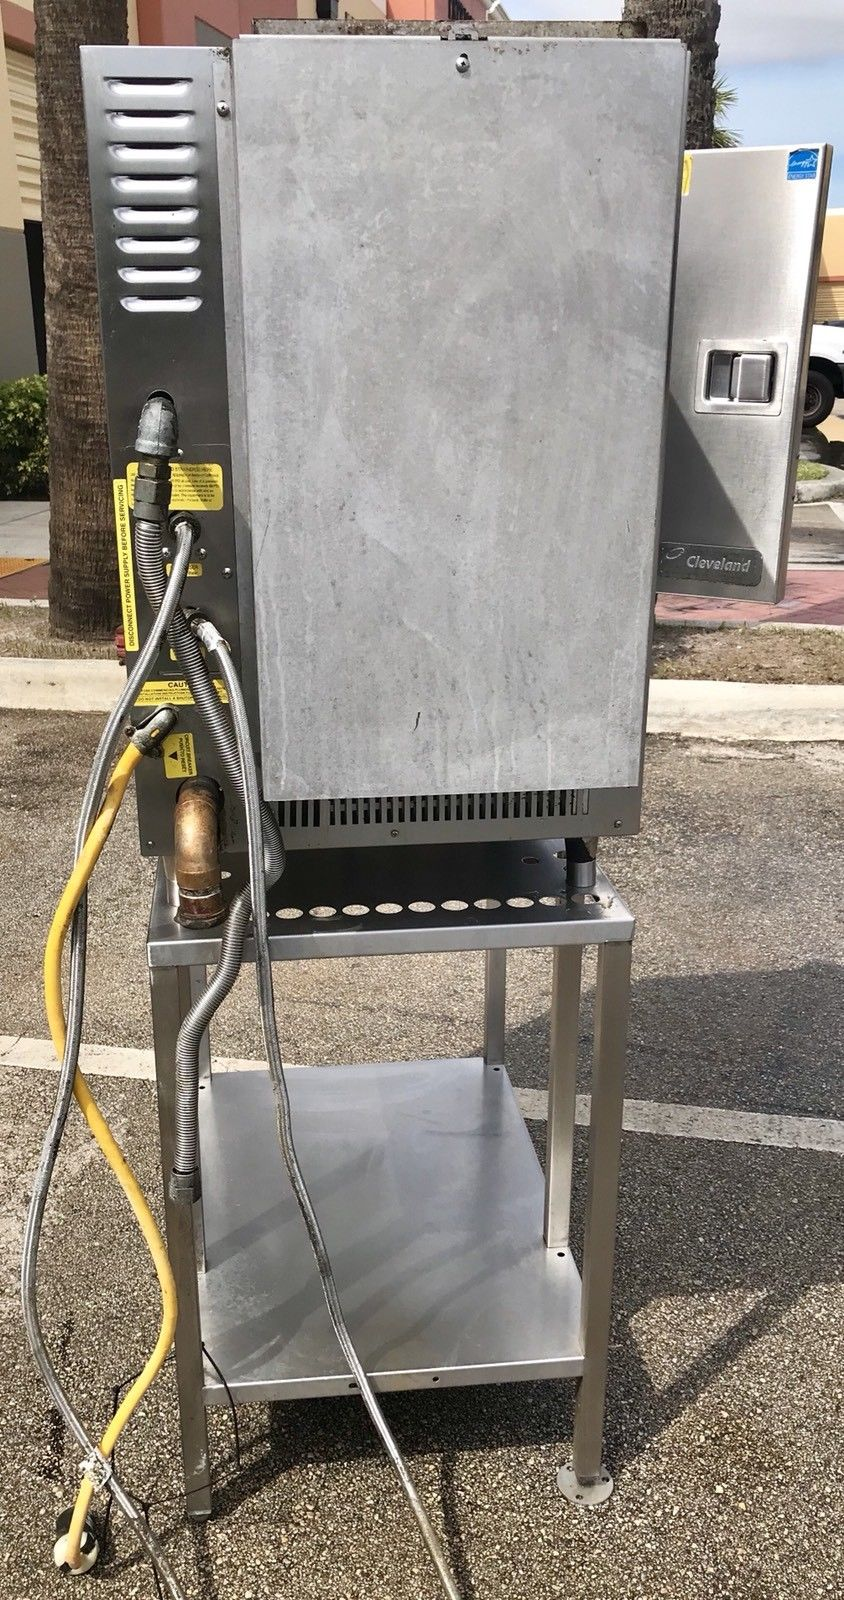 Cleveland, 22CGT6.1, Steam Chef, 6 Pan on a Stand Steamer, 32,000 BTU